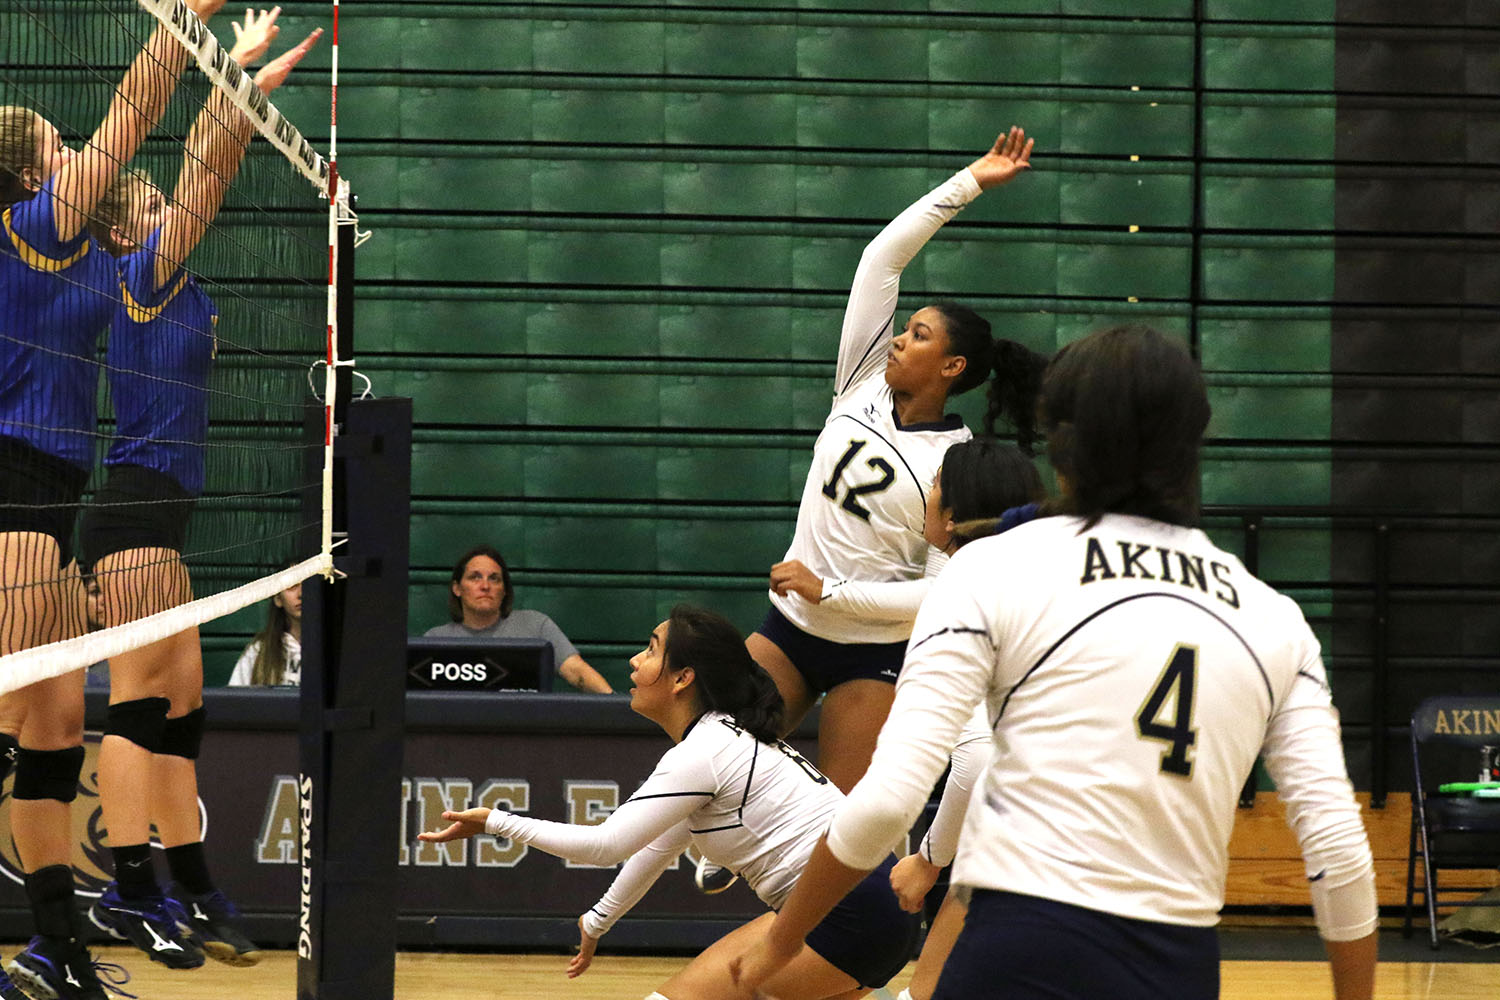 Freshman Shanti Ramdeen (12) goes for a spike as two players form the Anderson Trojans try to black it on Sept. 26. The Lady Eagles lost the game 0-3.